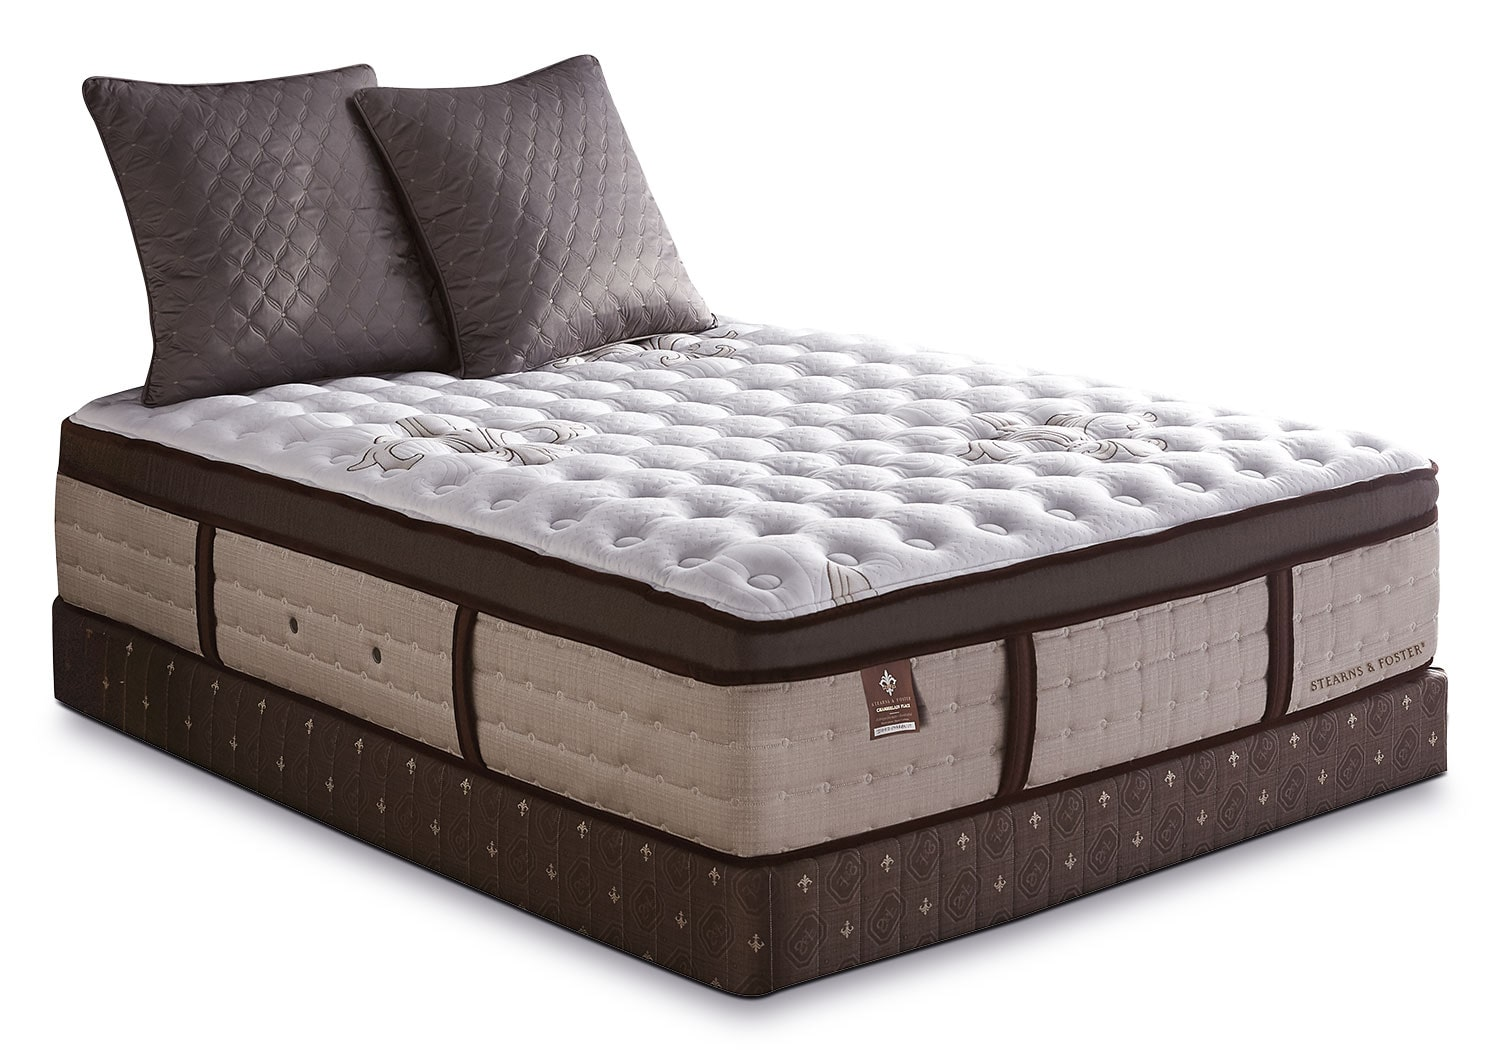 Mattresses and Bedding - Stearns & Foster Chamberlain Place Euro-Top Plush Queen Mattress Set